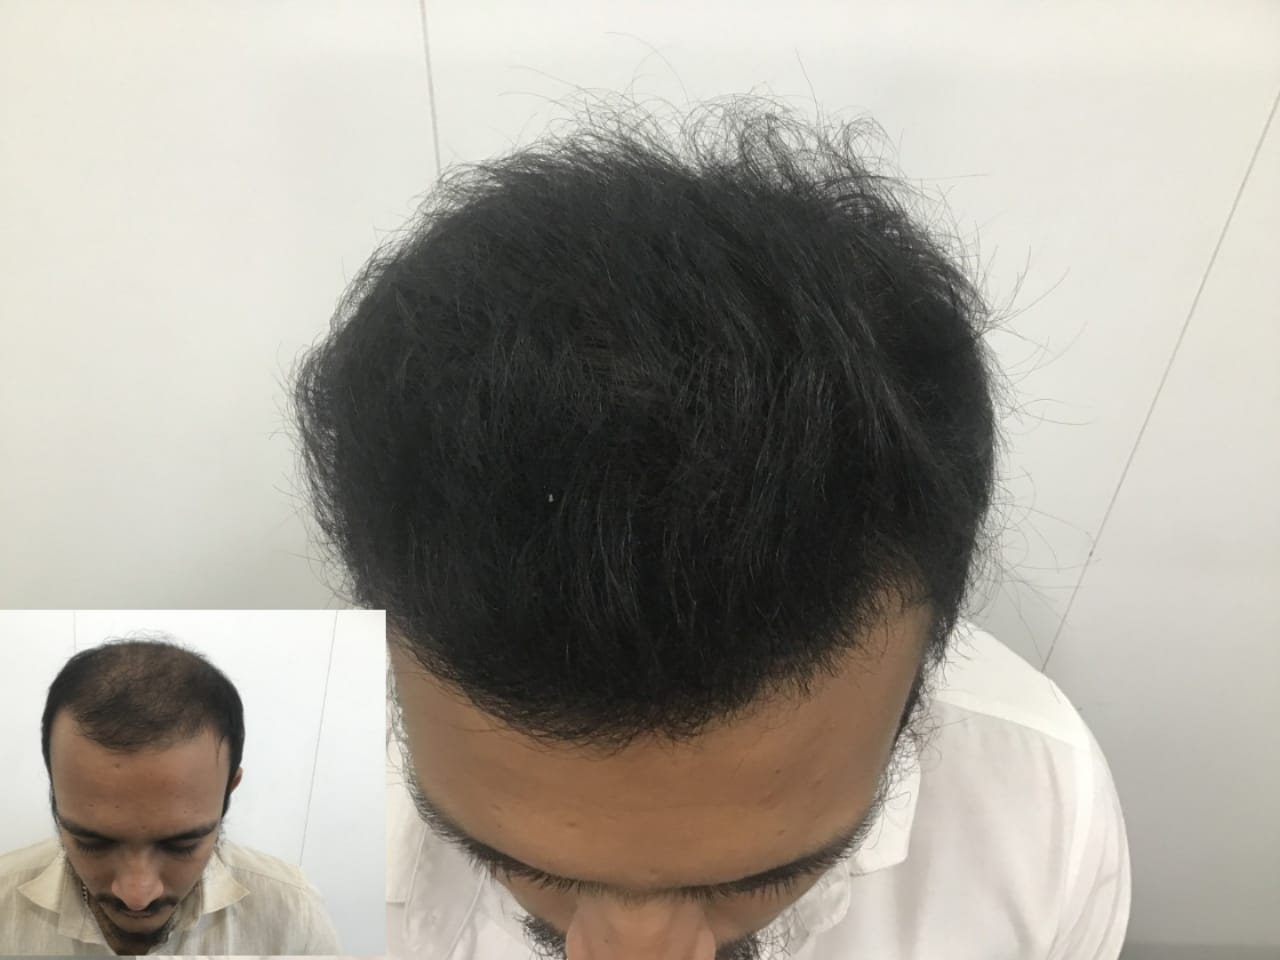 Best Hair Transplant Result Of 28 Year Old From Gujarat